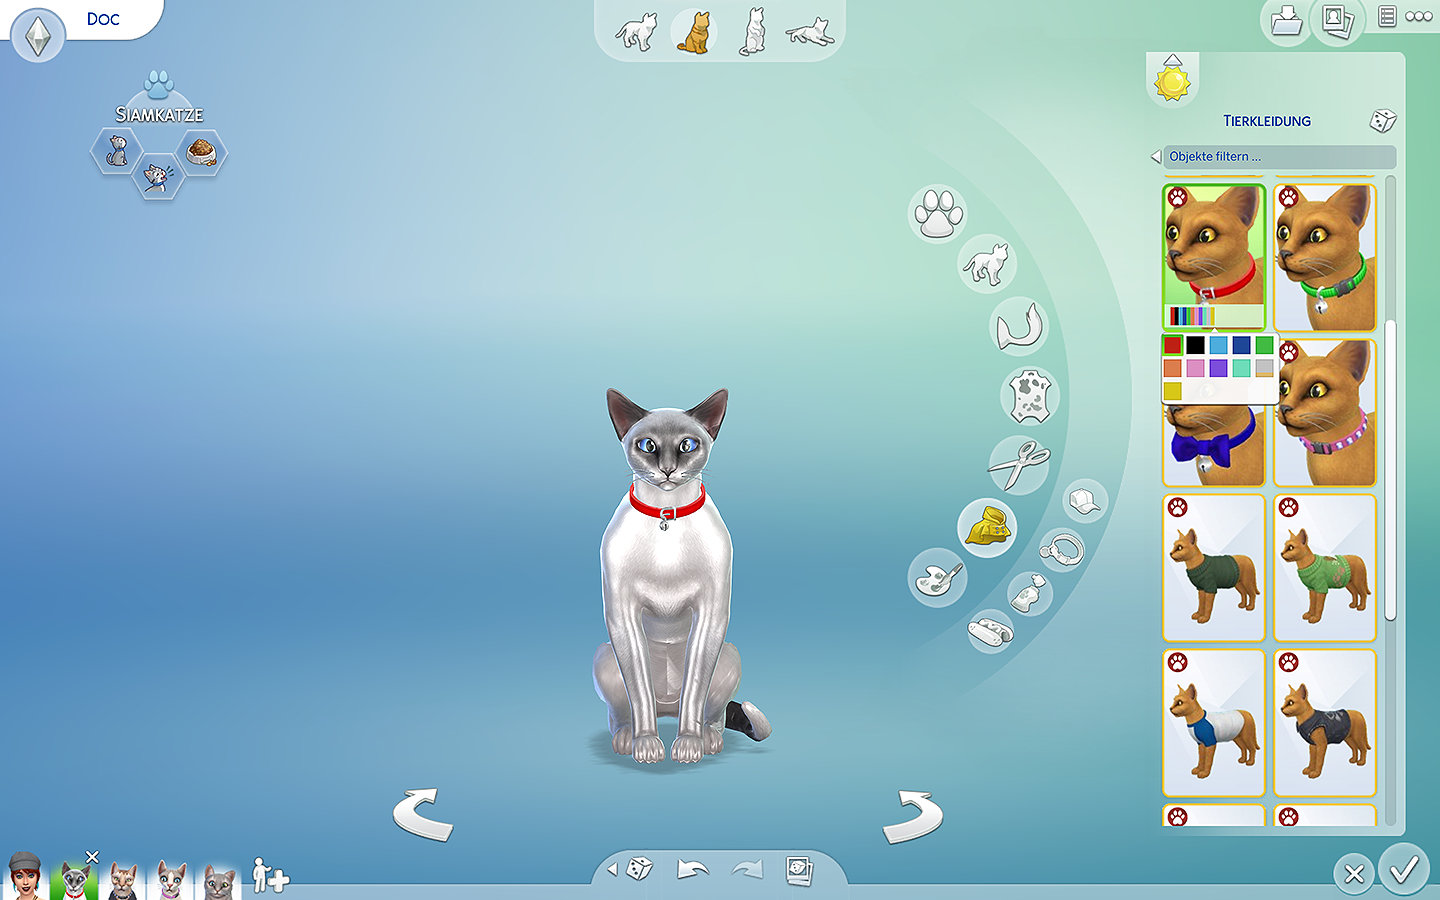 How To Feed Dogs In Sims